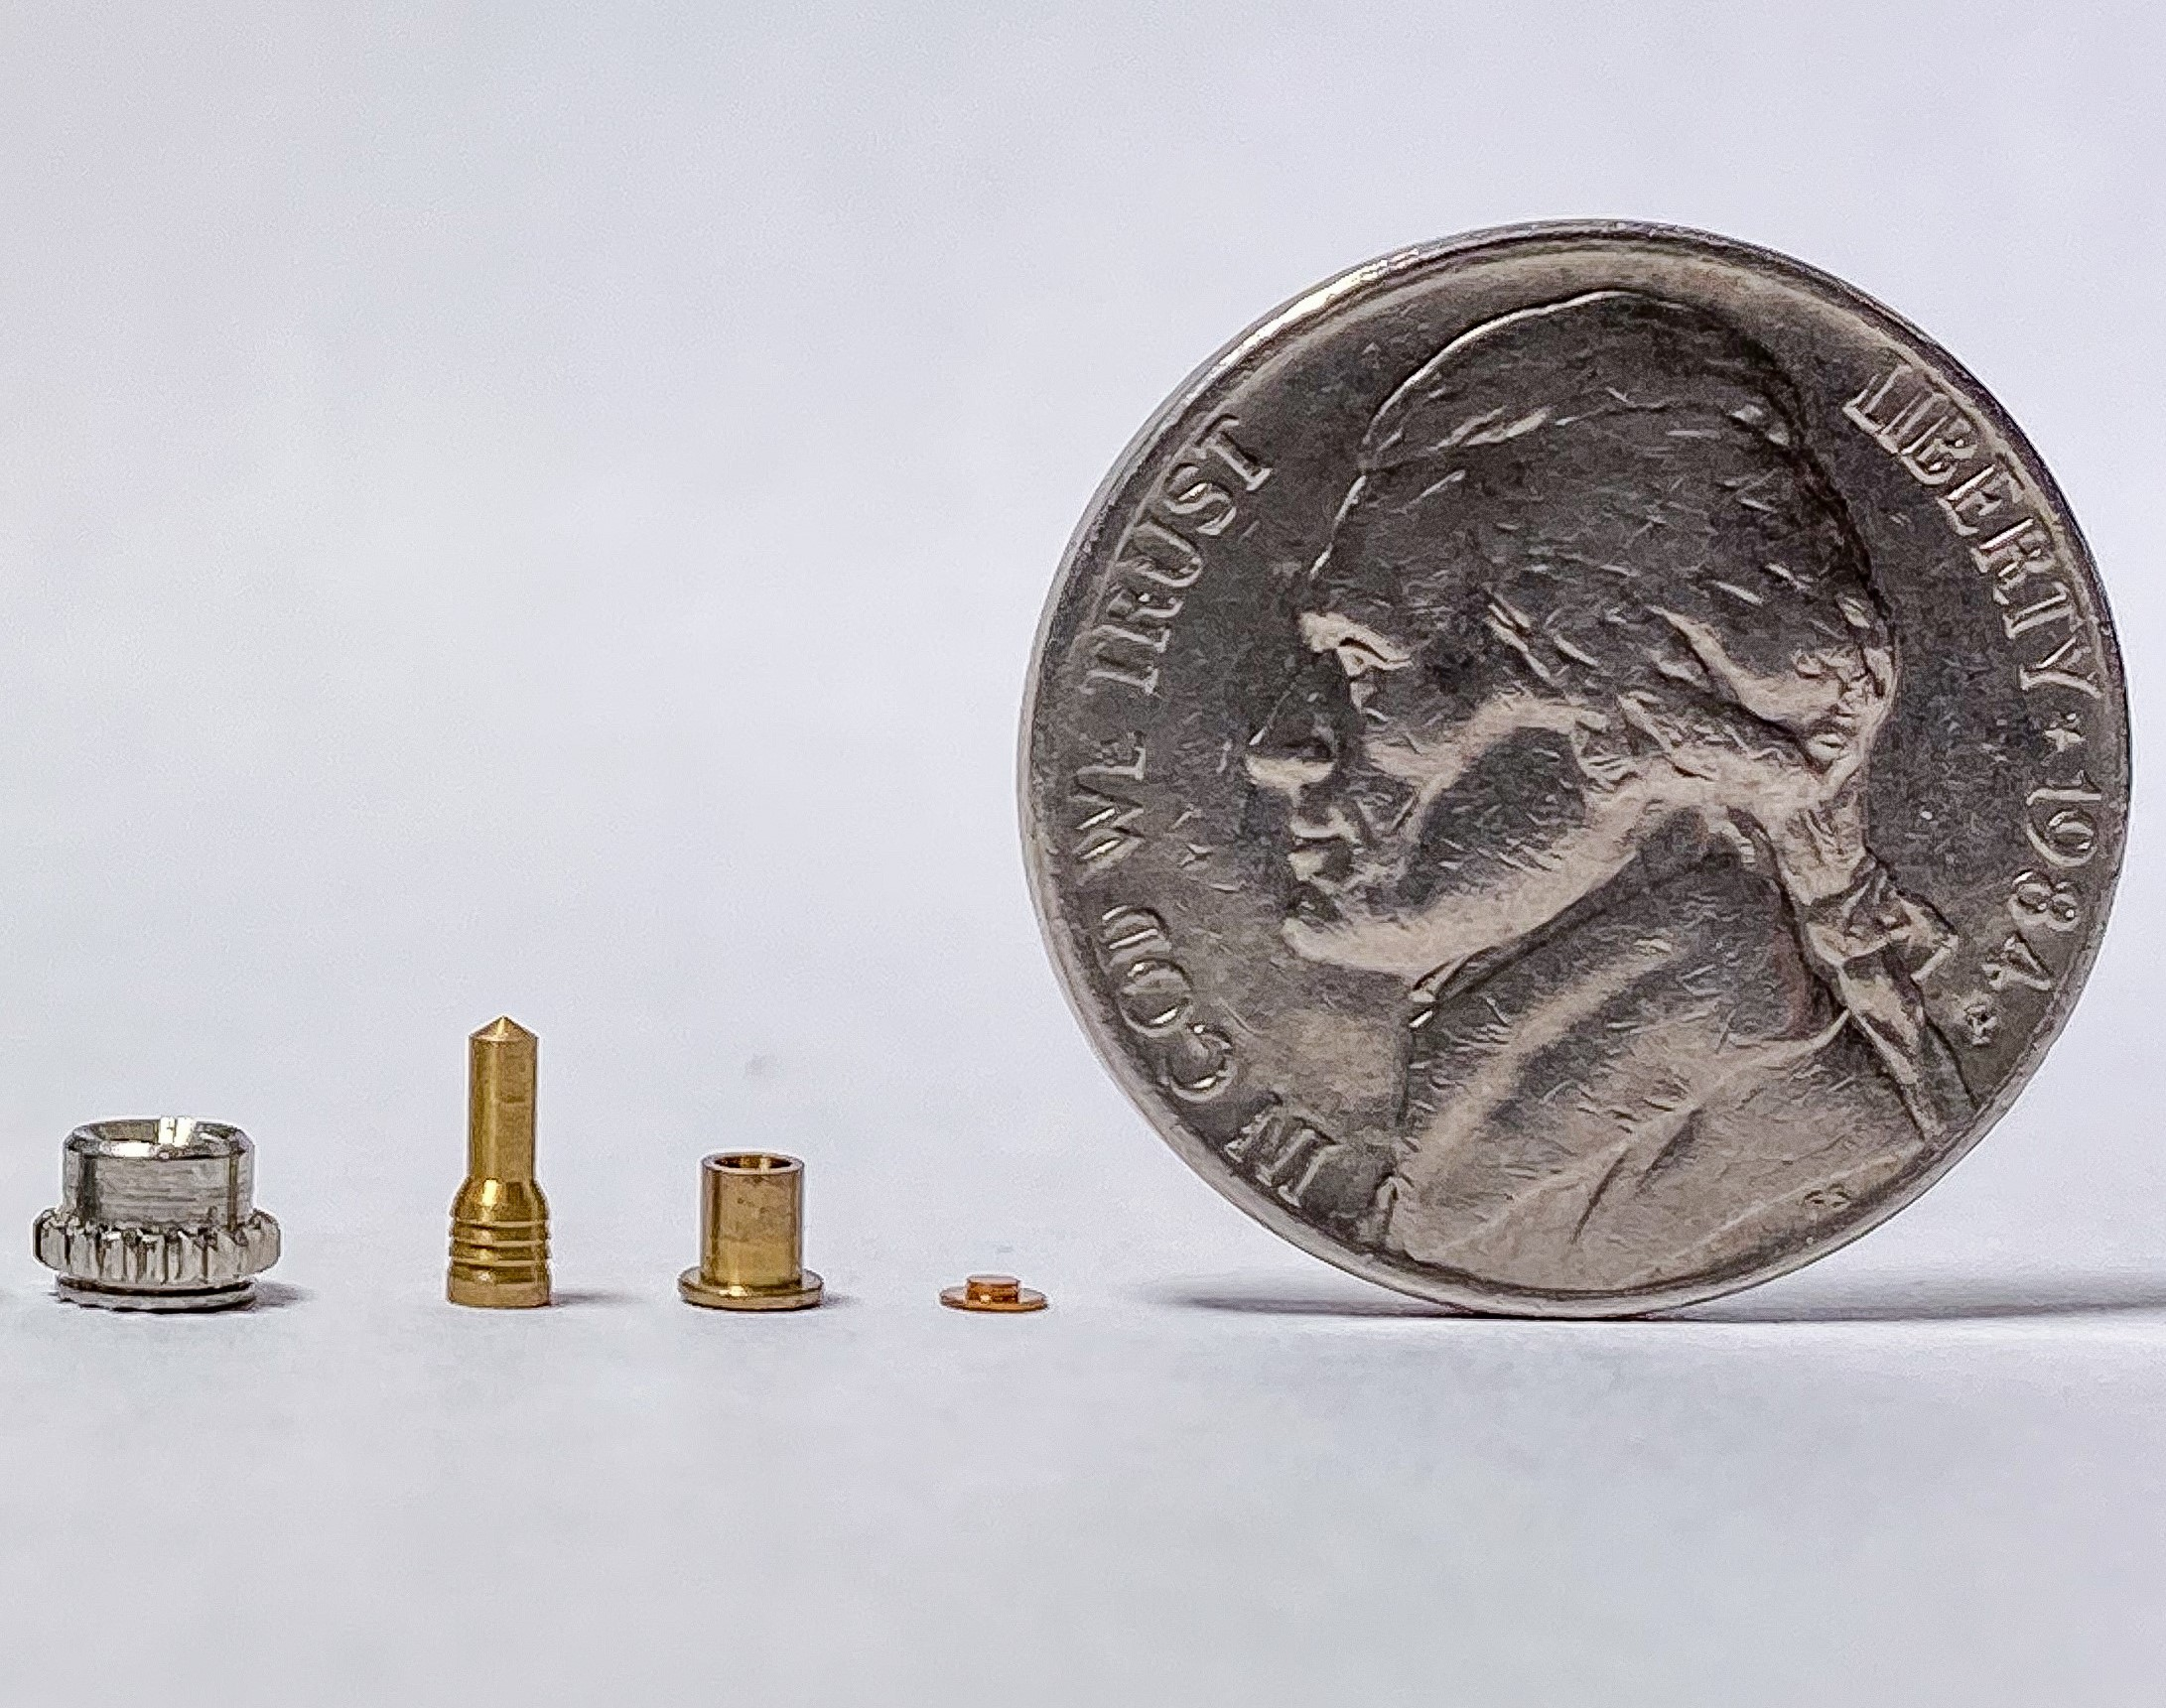 Precision CNC Micromachined Miniature Parts With Nickel